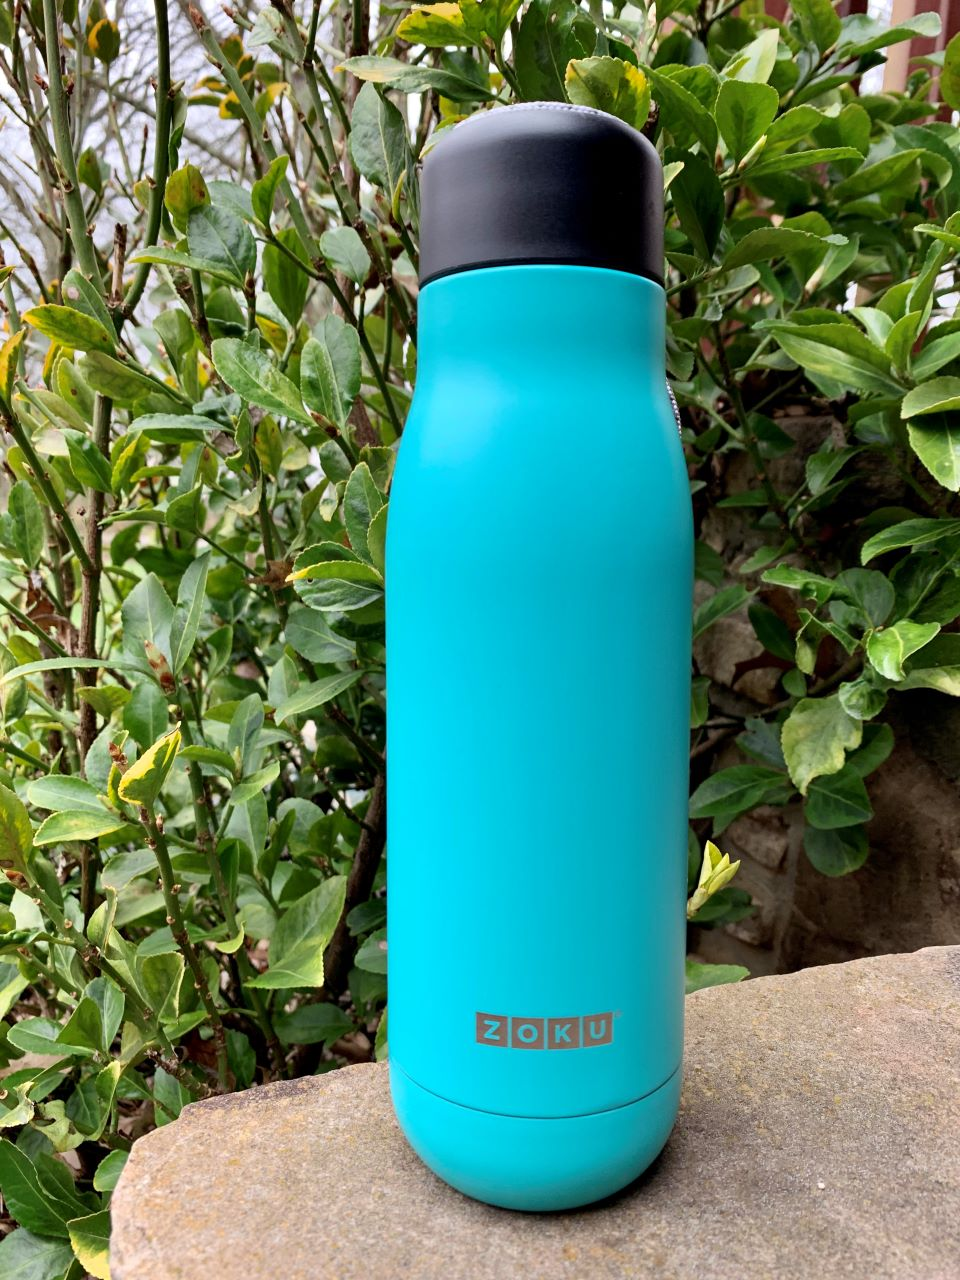 Zoku Insulated stainless steel water bottle makes brings water easy